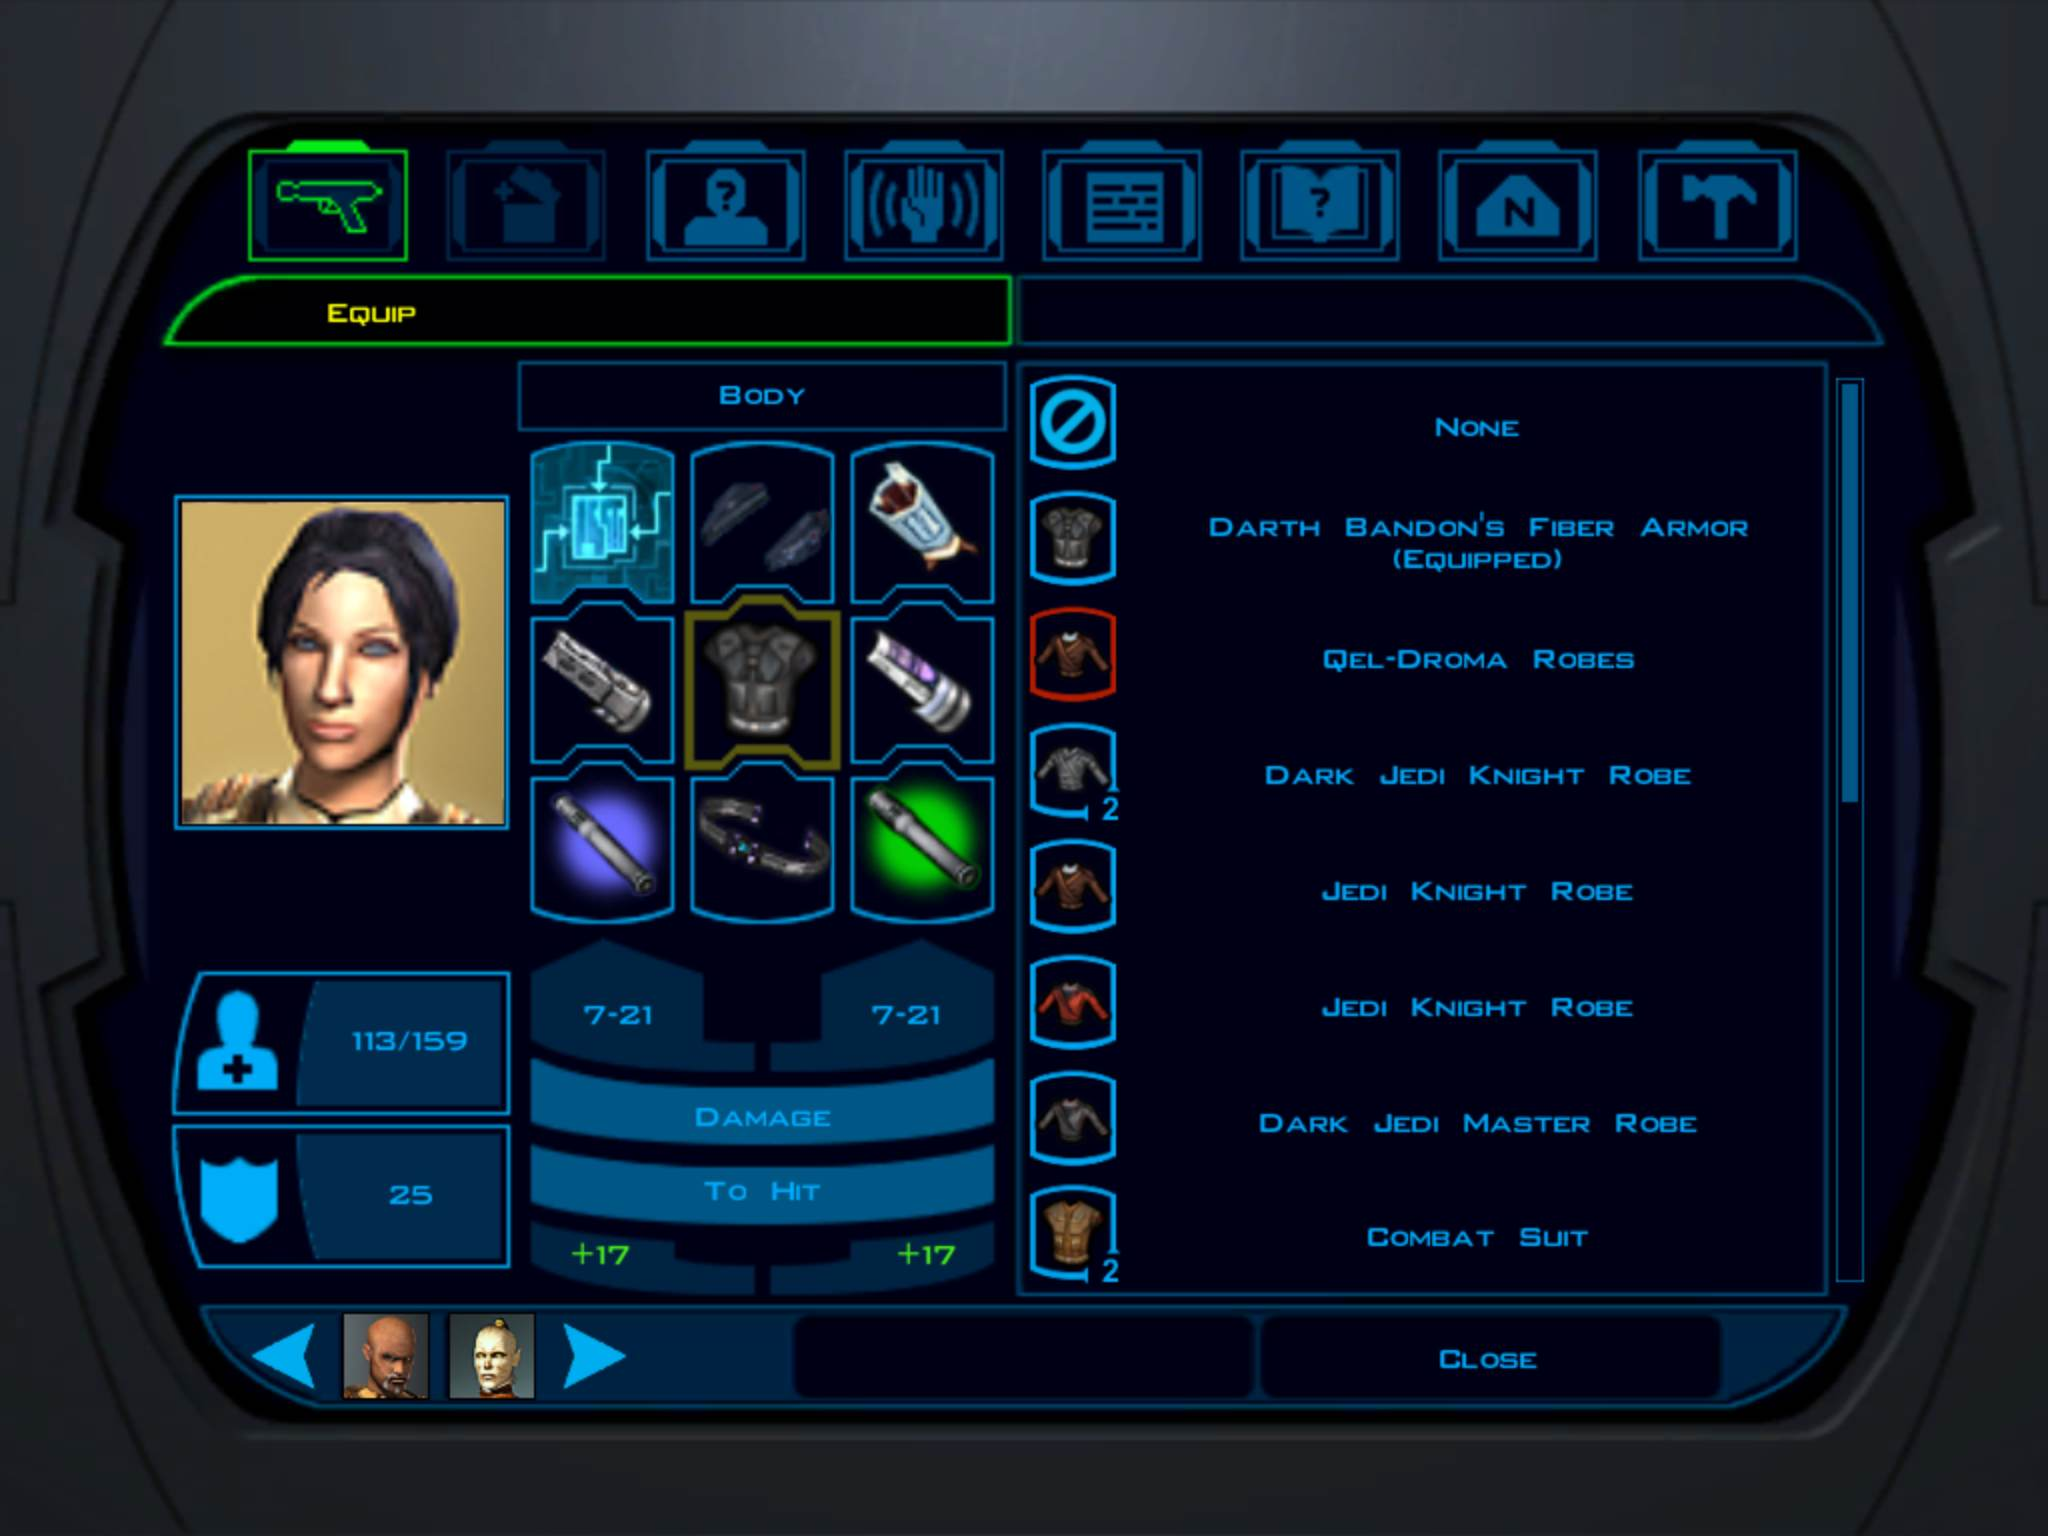 Star-Wars-Knights-of-the-Old-Republic-inGame-Tela-2 STAR WARS: Knights of The Old Republic ganhará versão para iPad